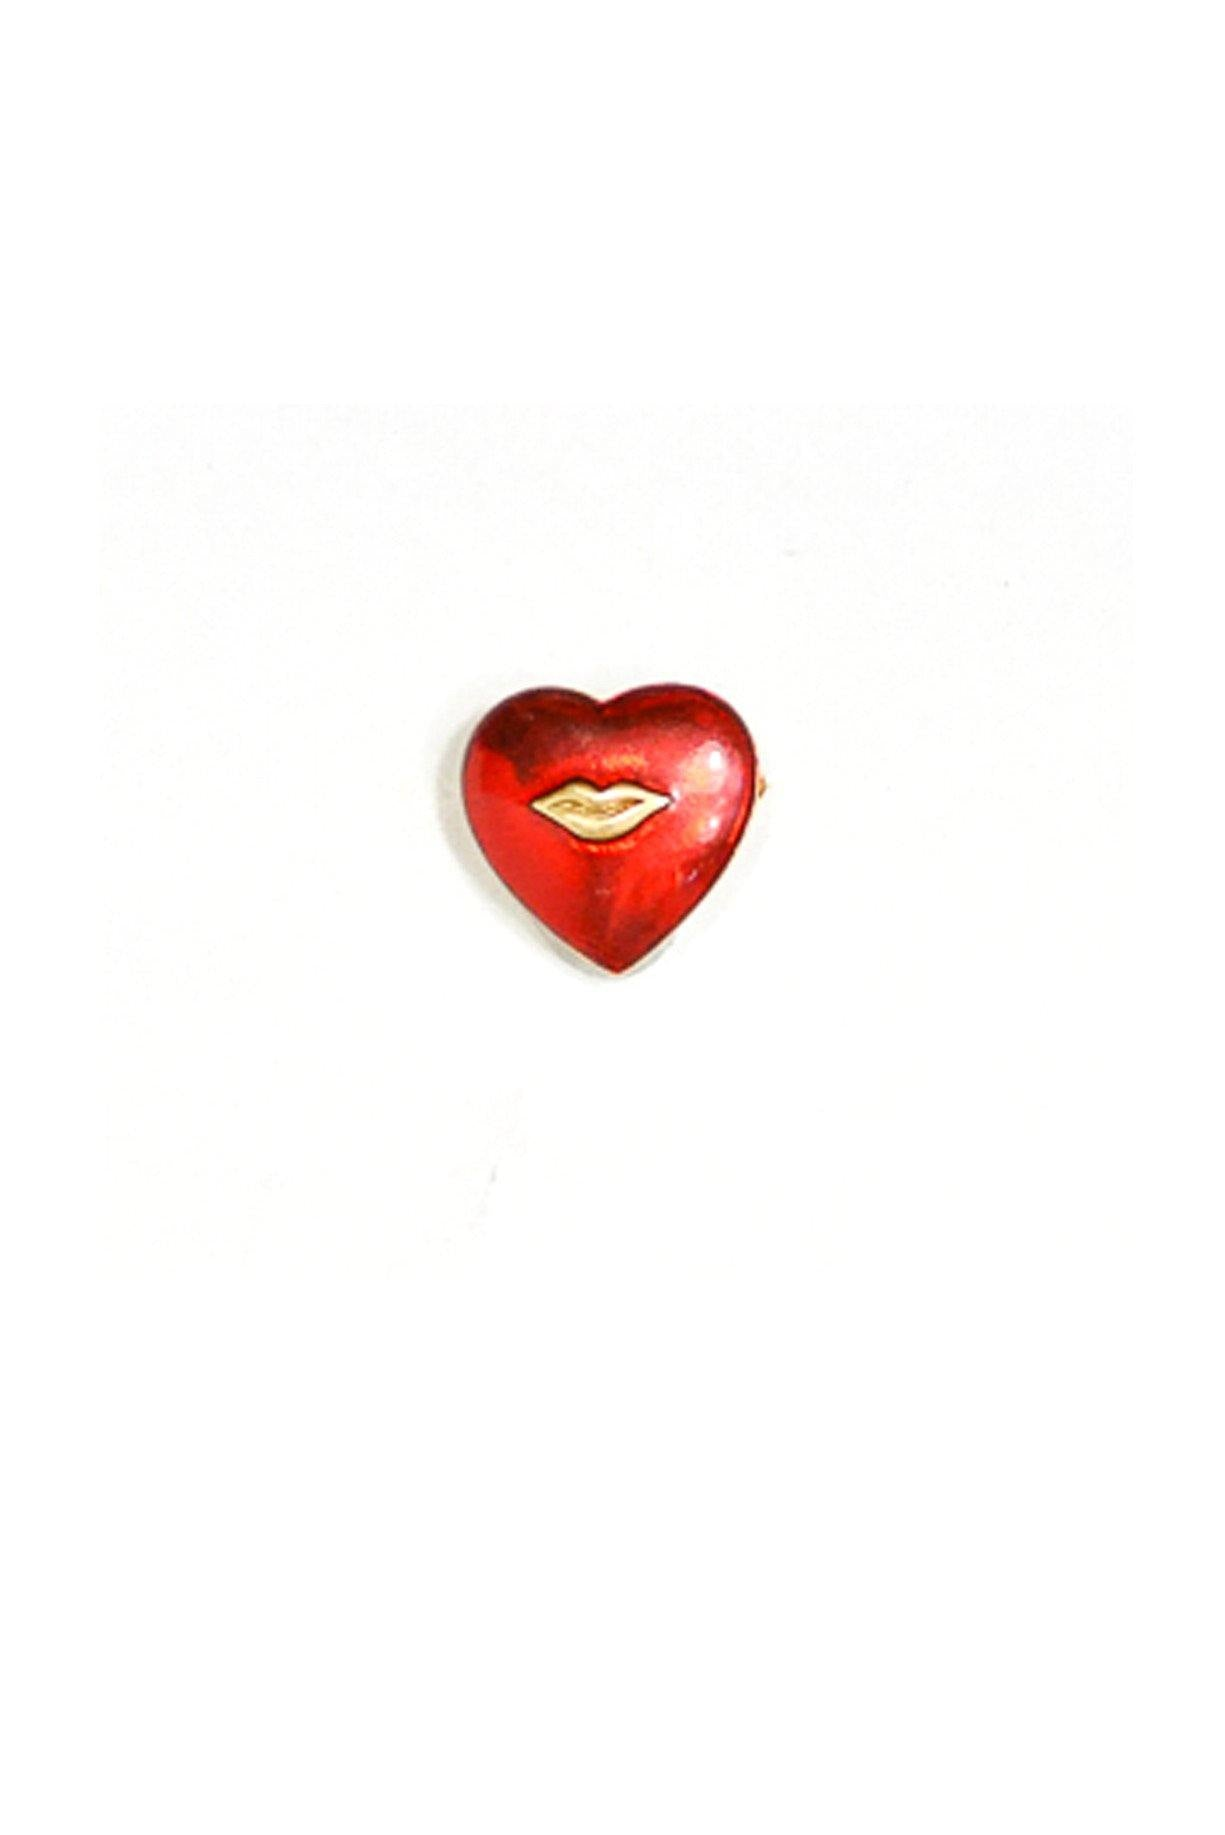 80's__Gerry's__Mini Heart Brooch